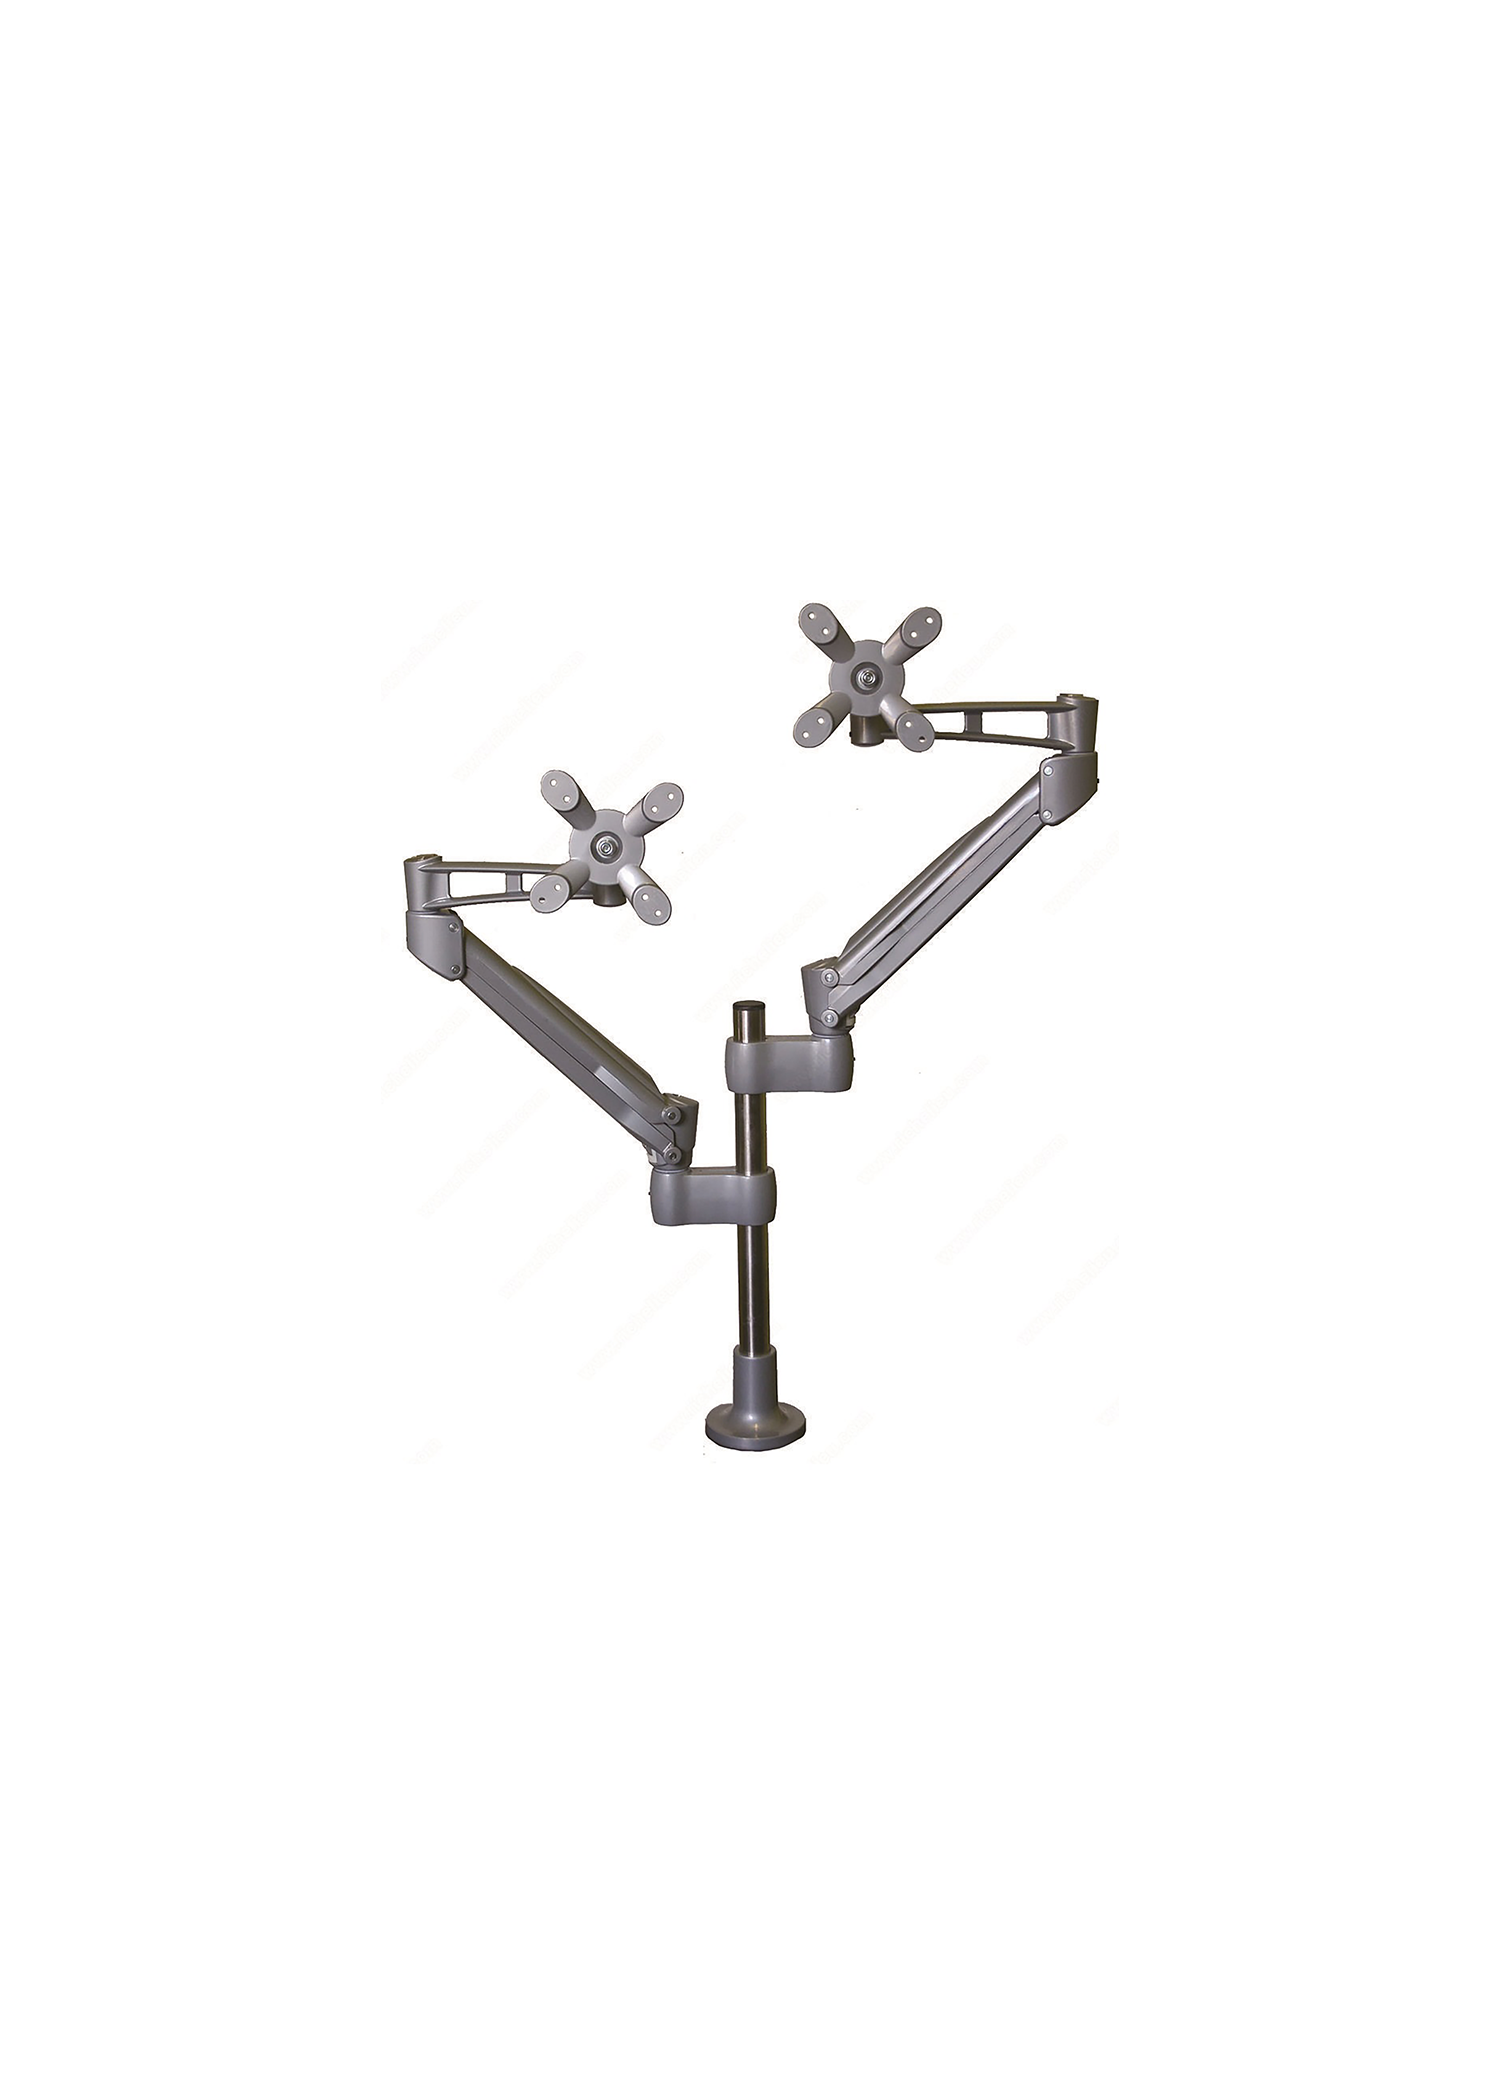 Office Furniture Toronto Accessories - Dual Monitor Arm